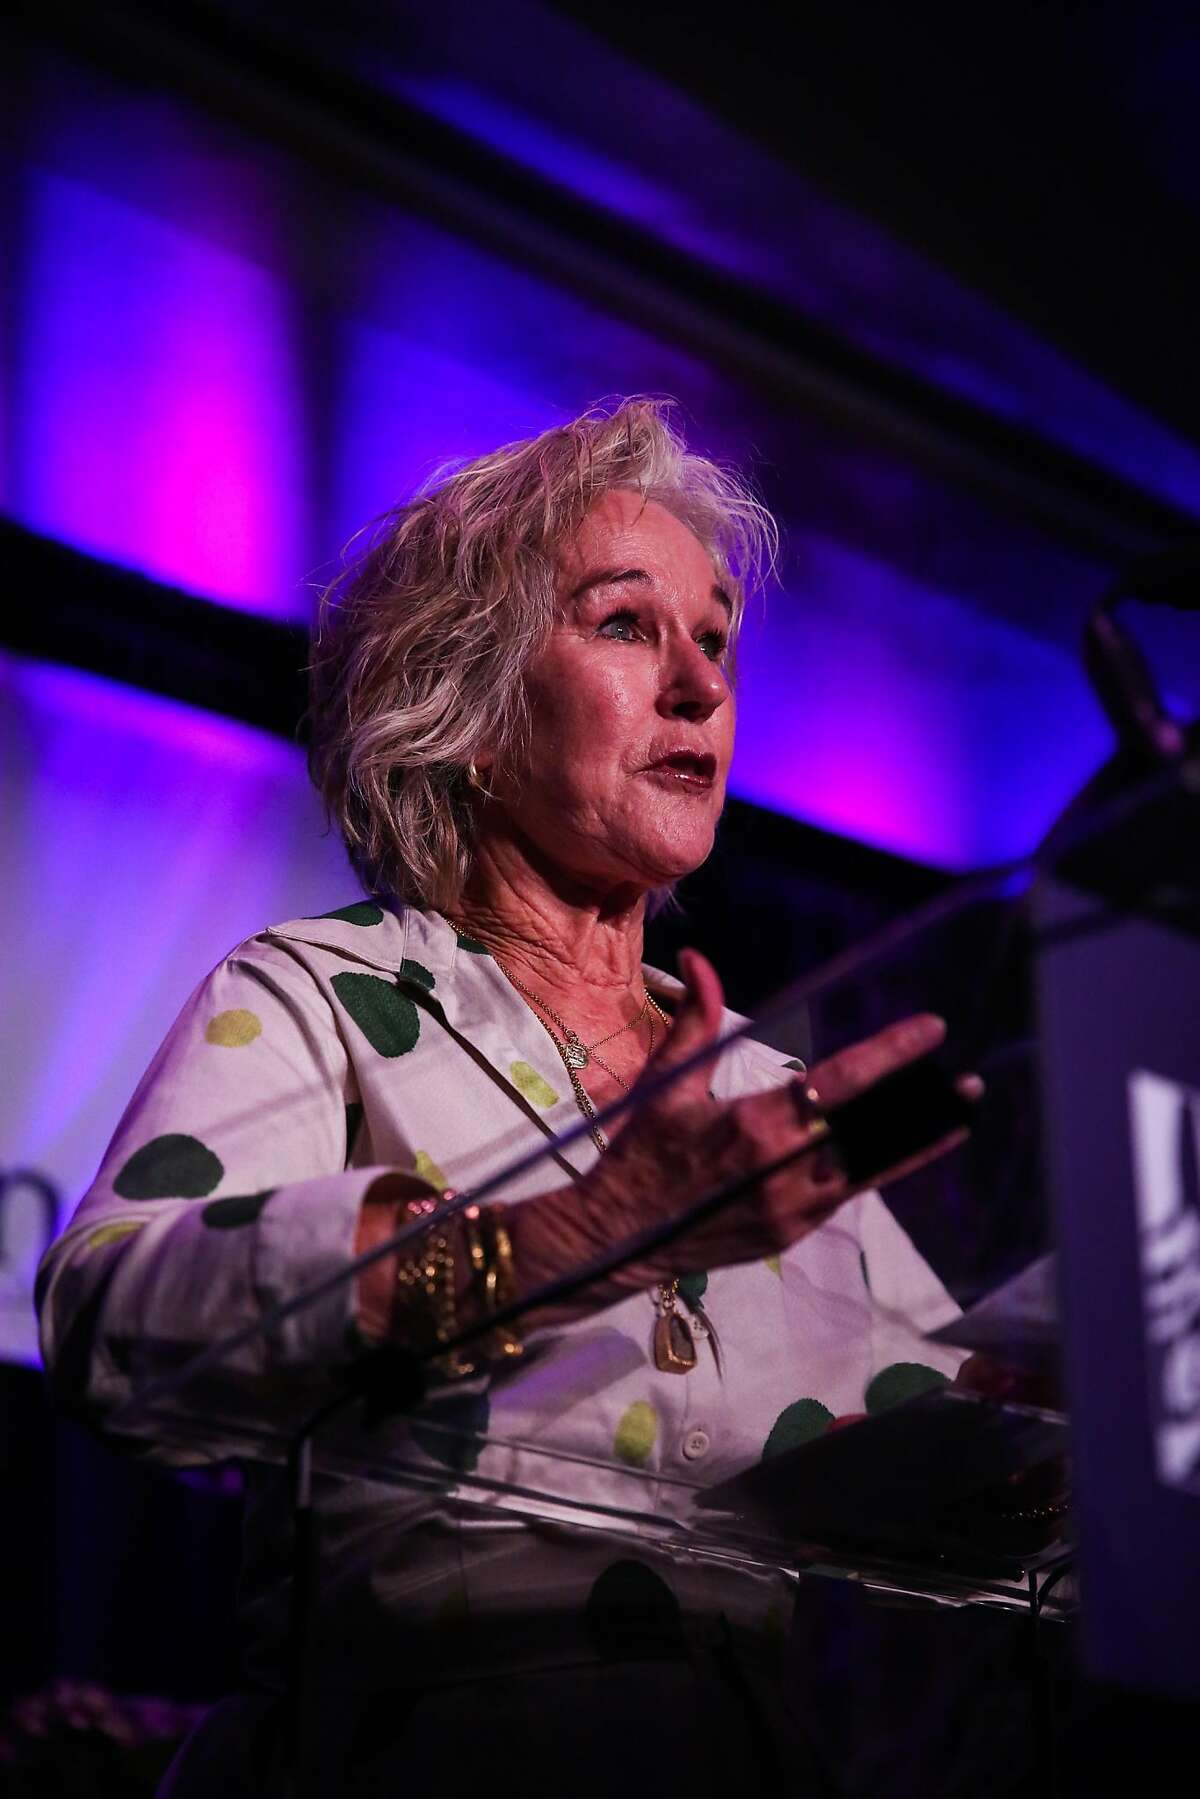 Susie Tompkins Buell speaks at the Naral Pro-Choice America 22nd Power of Choice Luncheon at the Fairmont Hotel in San Francisco, California, on Thursday, March 2, 2017.